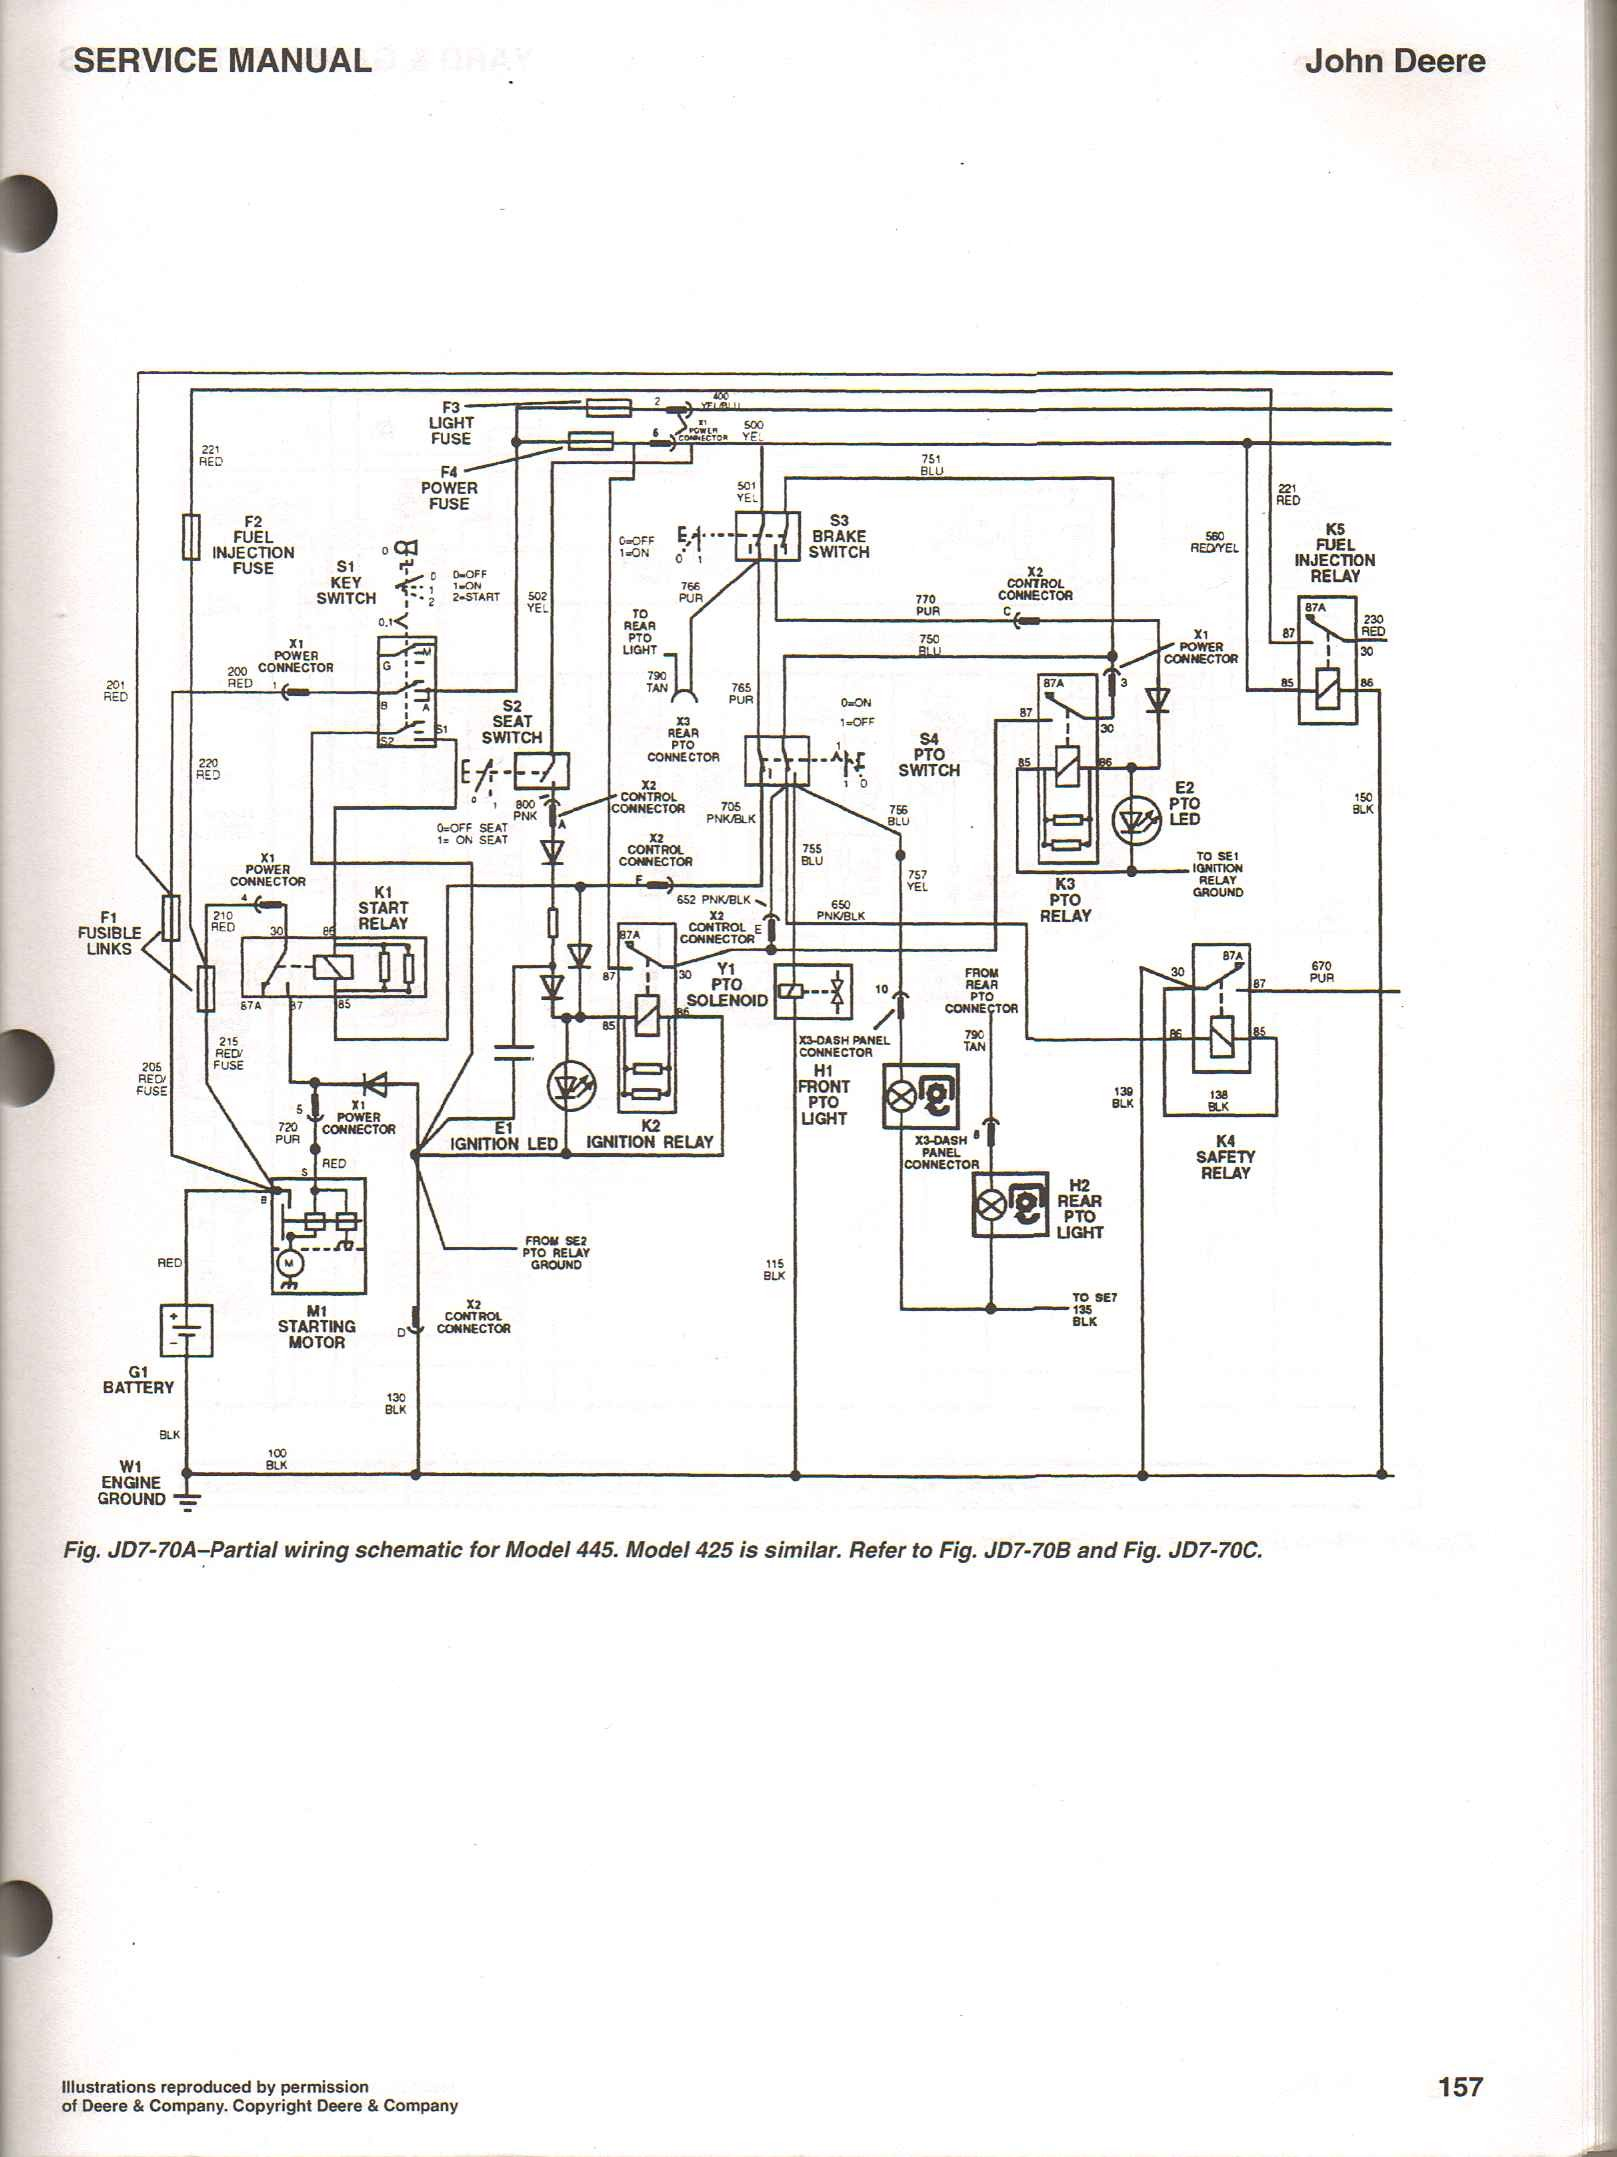 John Deere 345 Schematic Re Deere 345 Lawn and Garden Tractor Pto Will Not Engage Of John Deere 345 Schematic Need A 345 Wiring Diagram Pdf Please